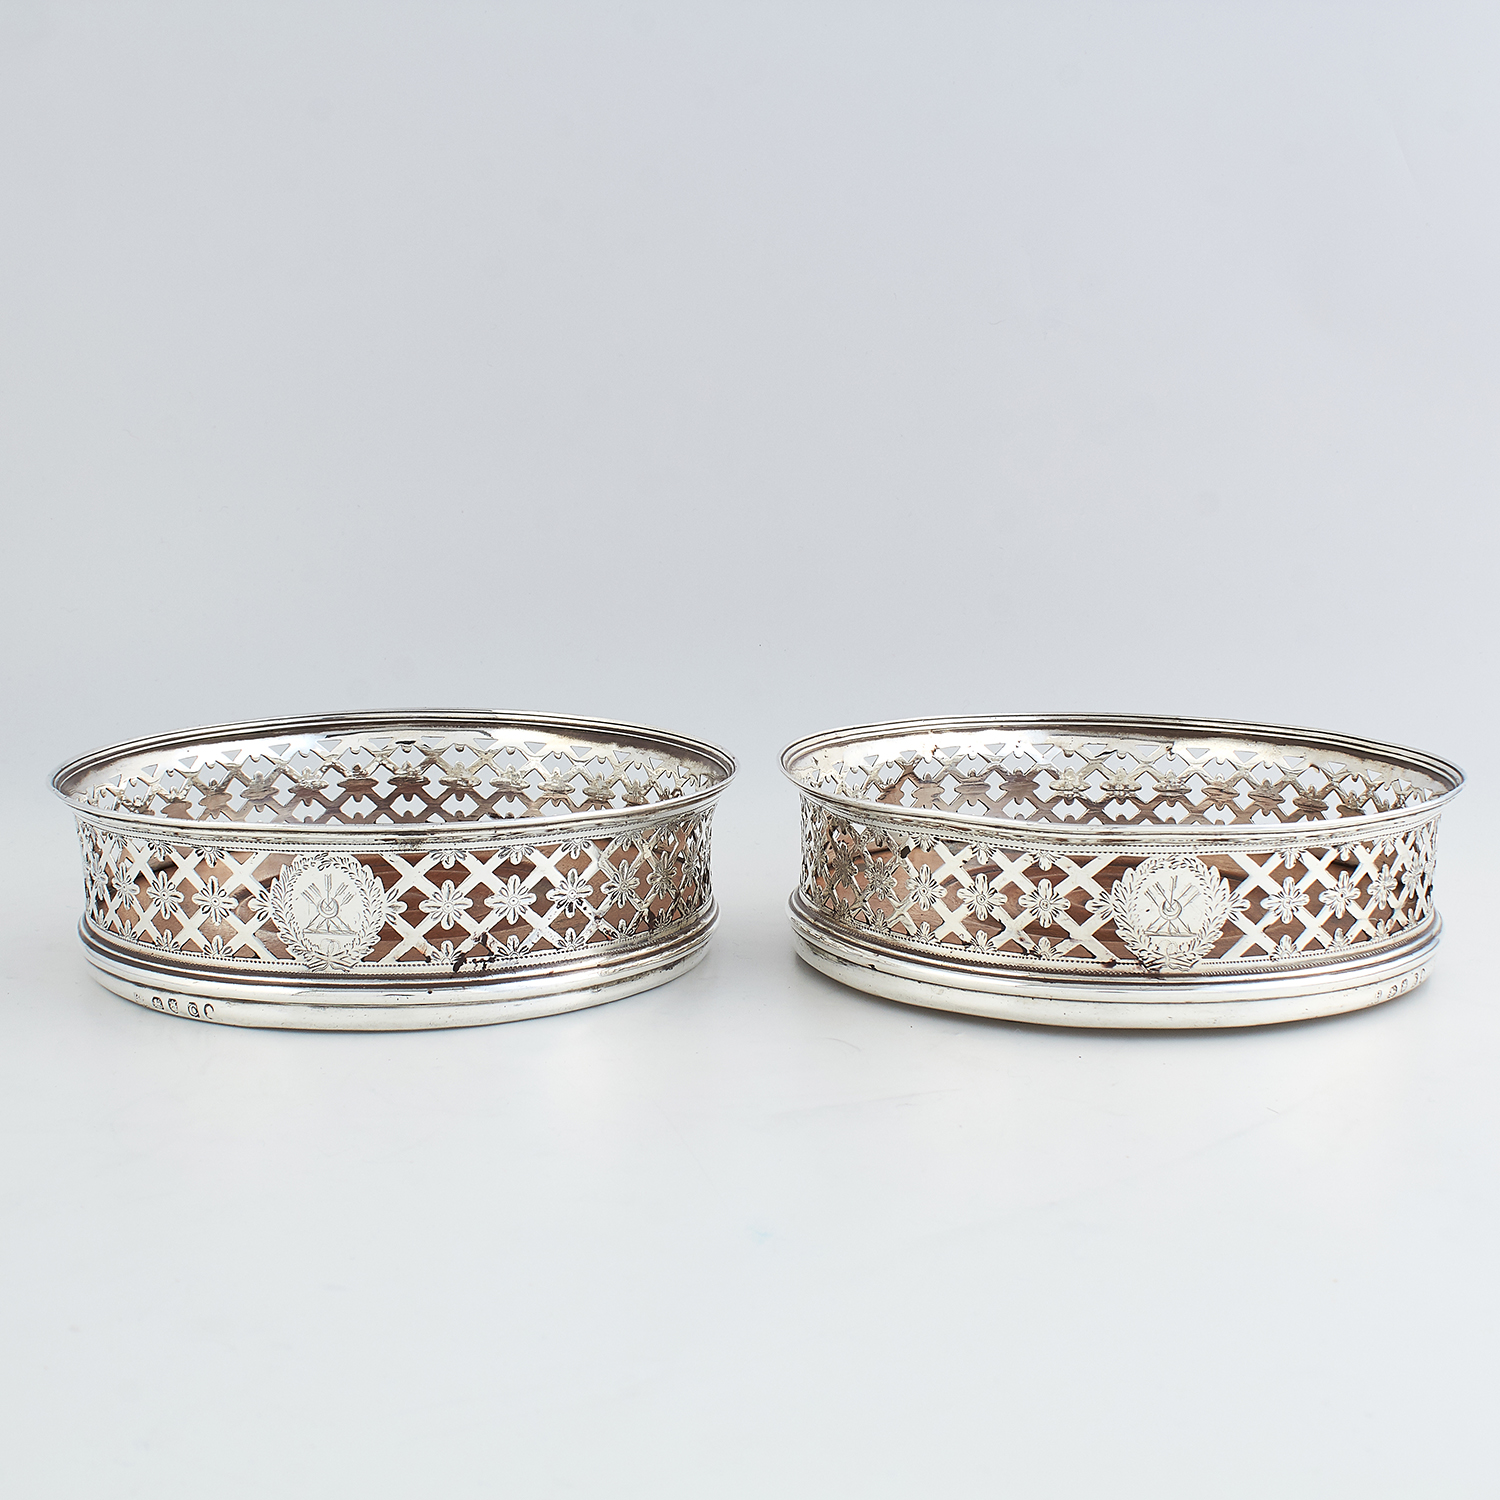 PAIR OF ANTIQUE GEORGE III STERLING SILVER WINE COASTERS, ROBERT & DAVID HENNELL, LONDON 1798 of